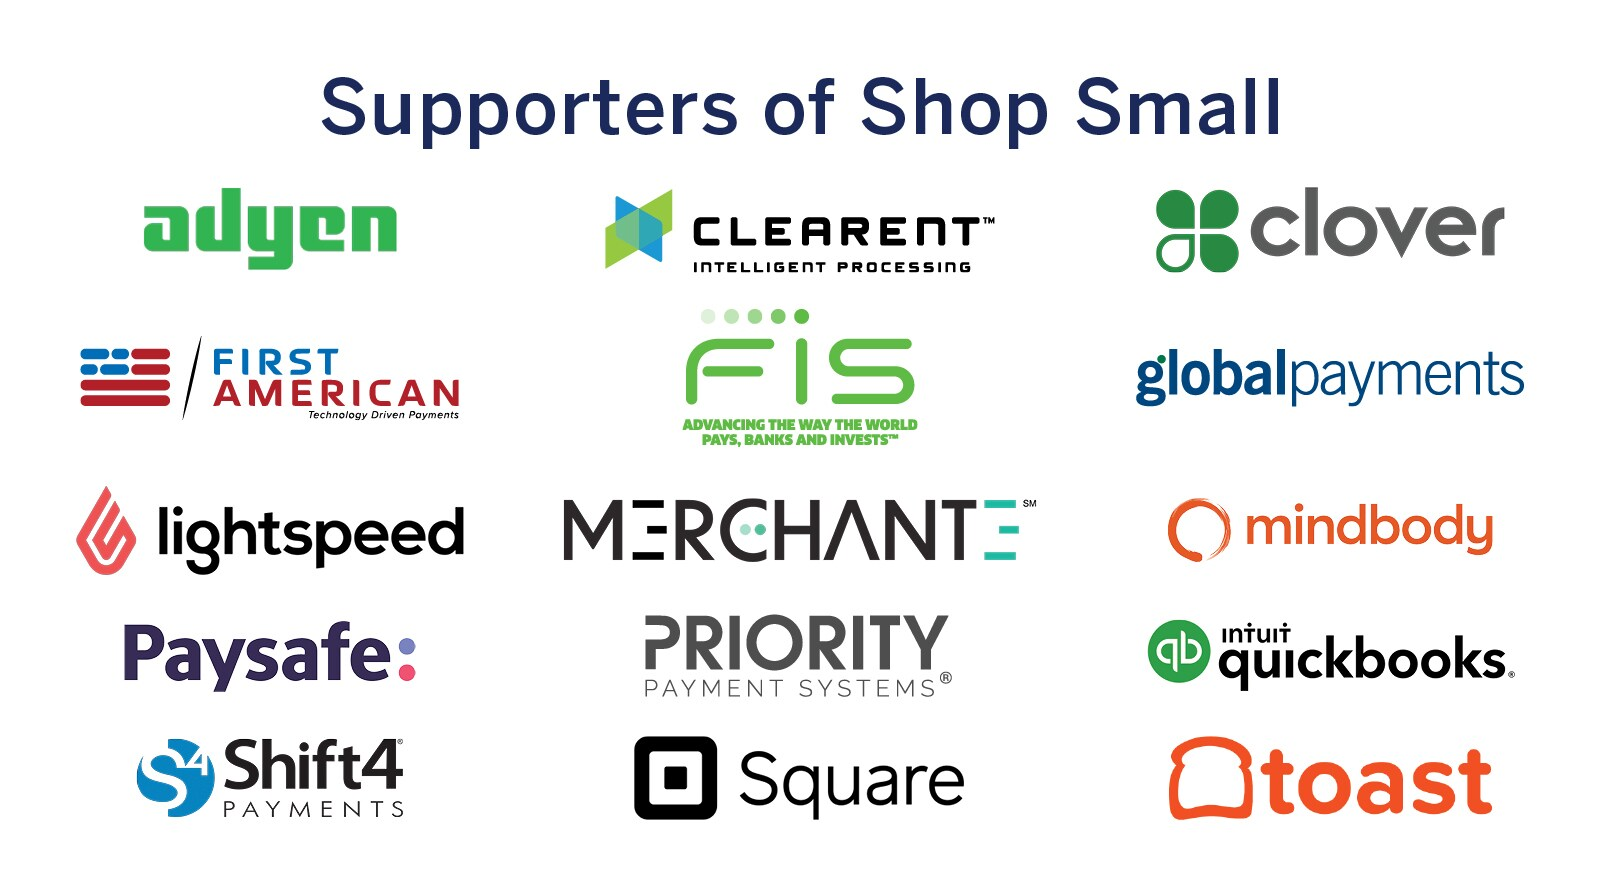 Supporters of Shop Small